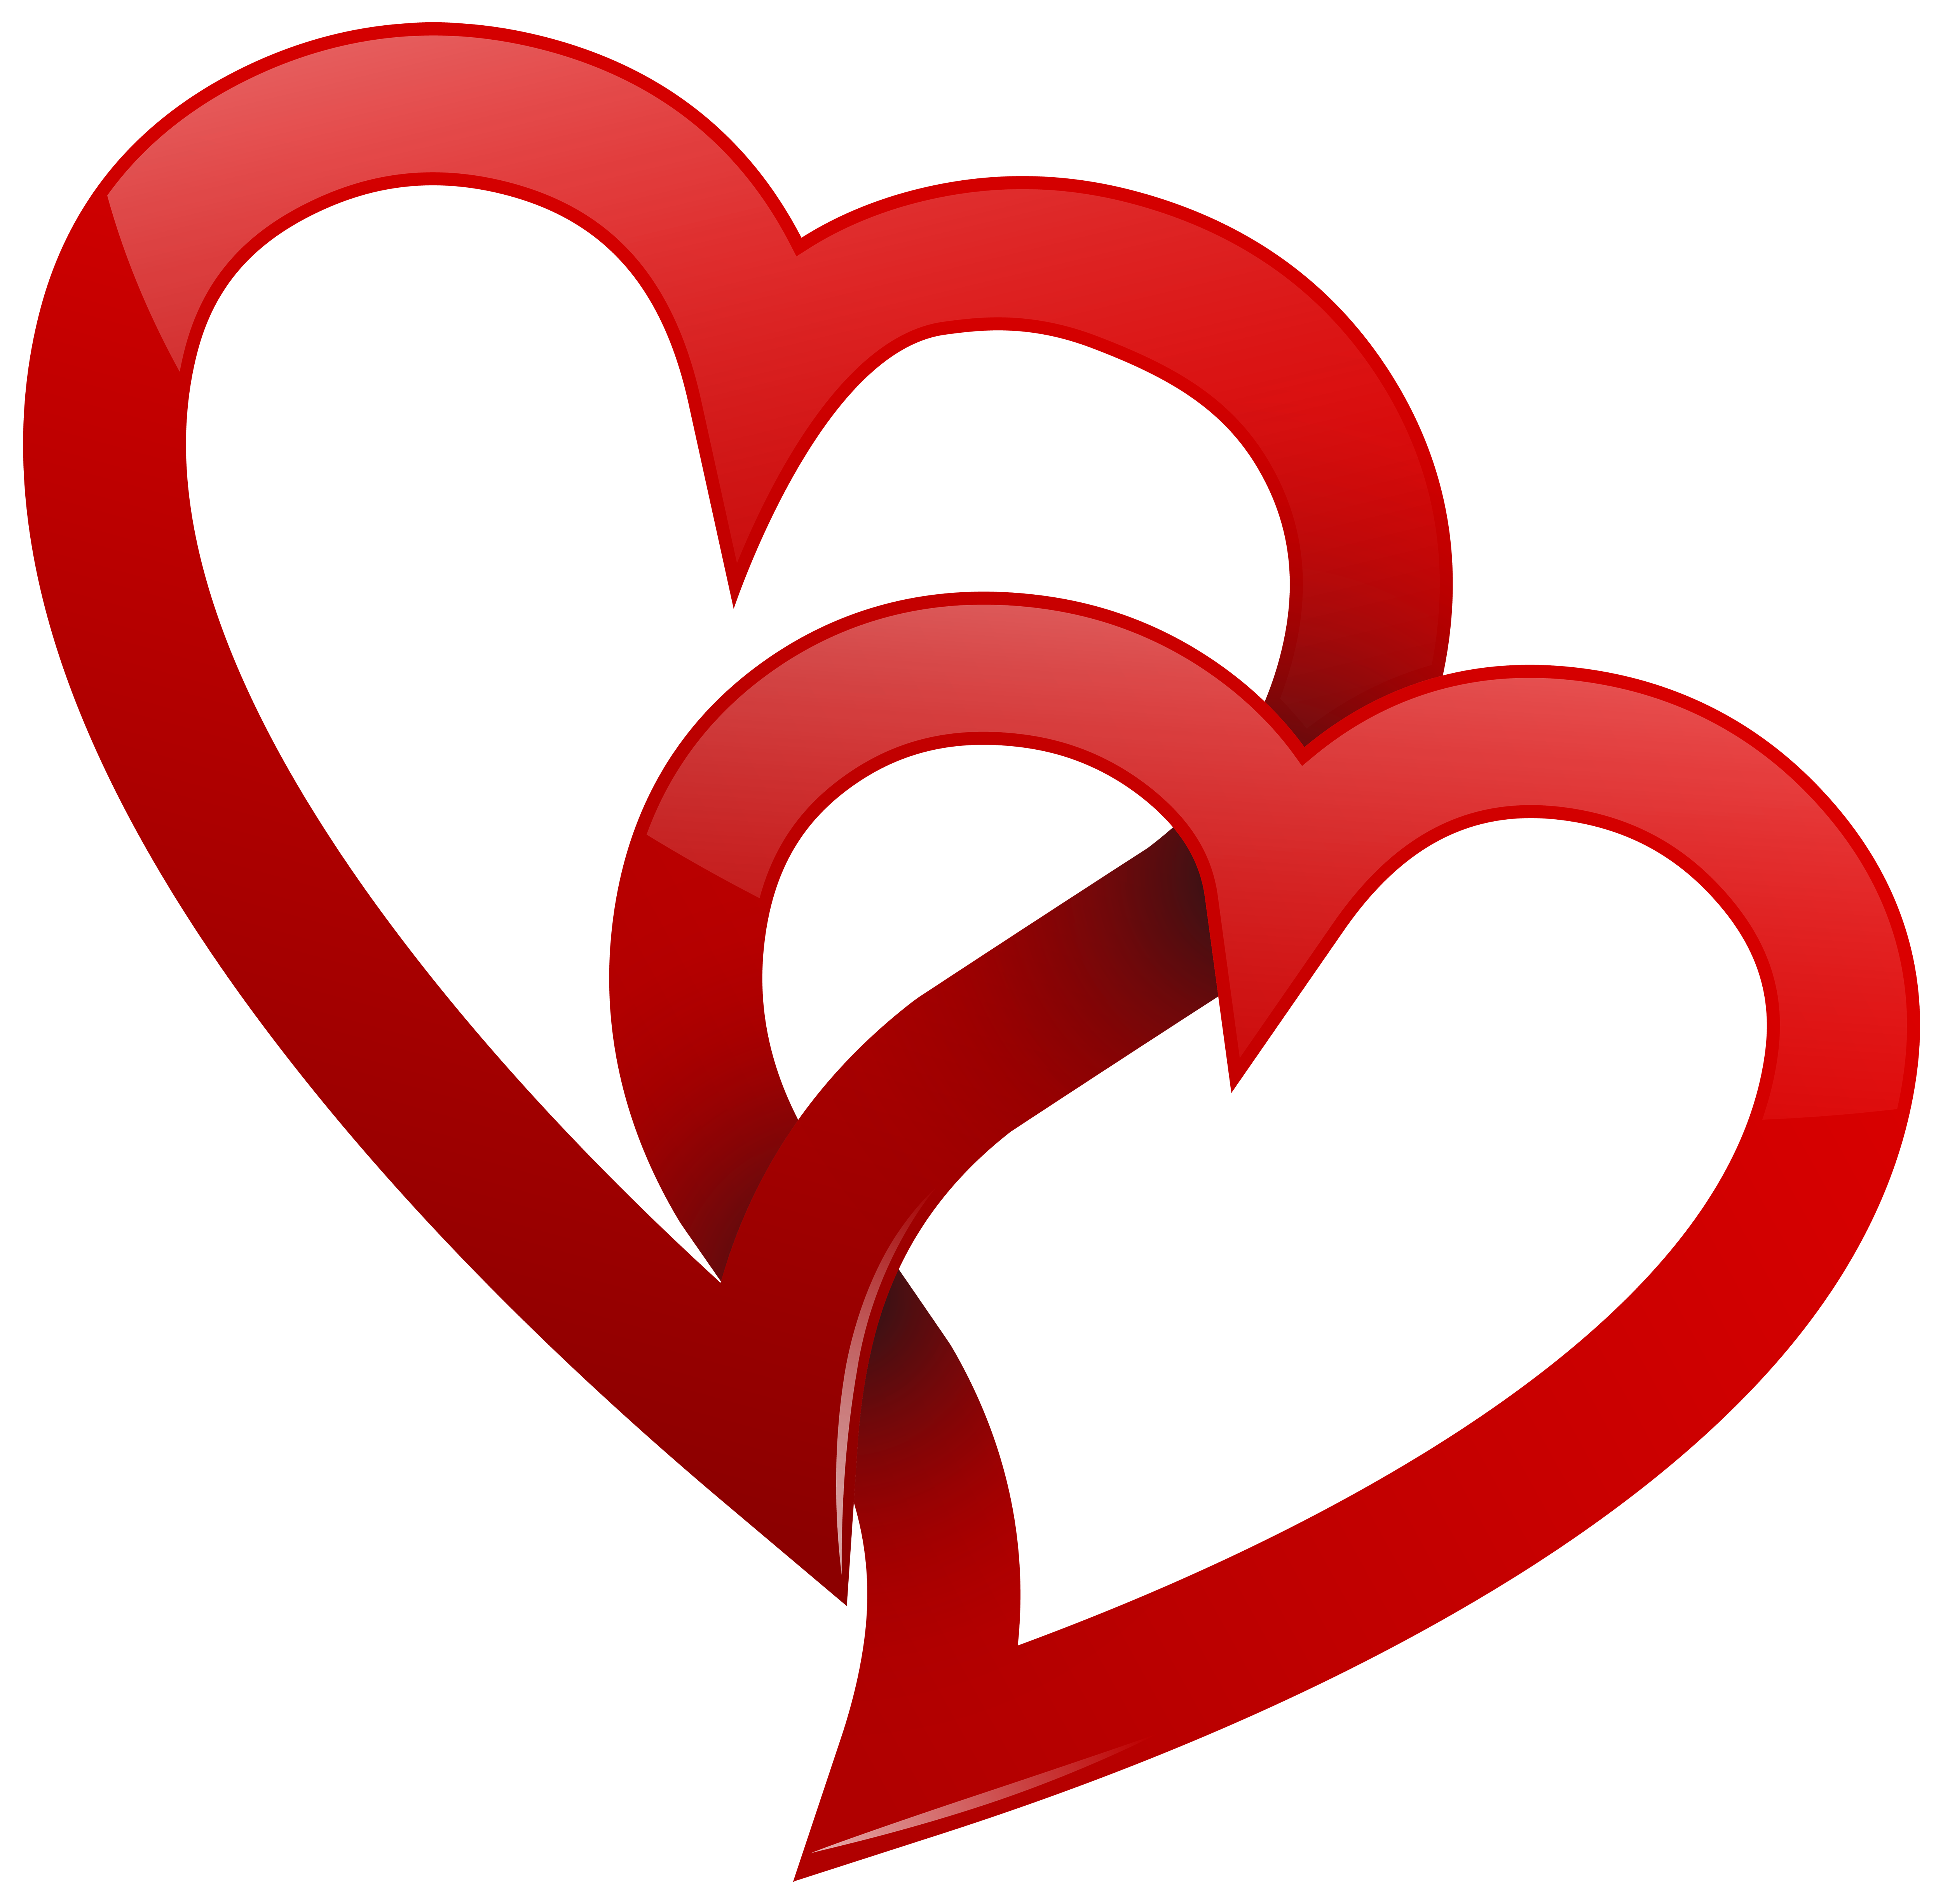 eee18cbff9e07d7c83aa949c9bb05639_two-red-hearts-png ...